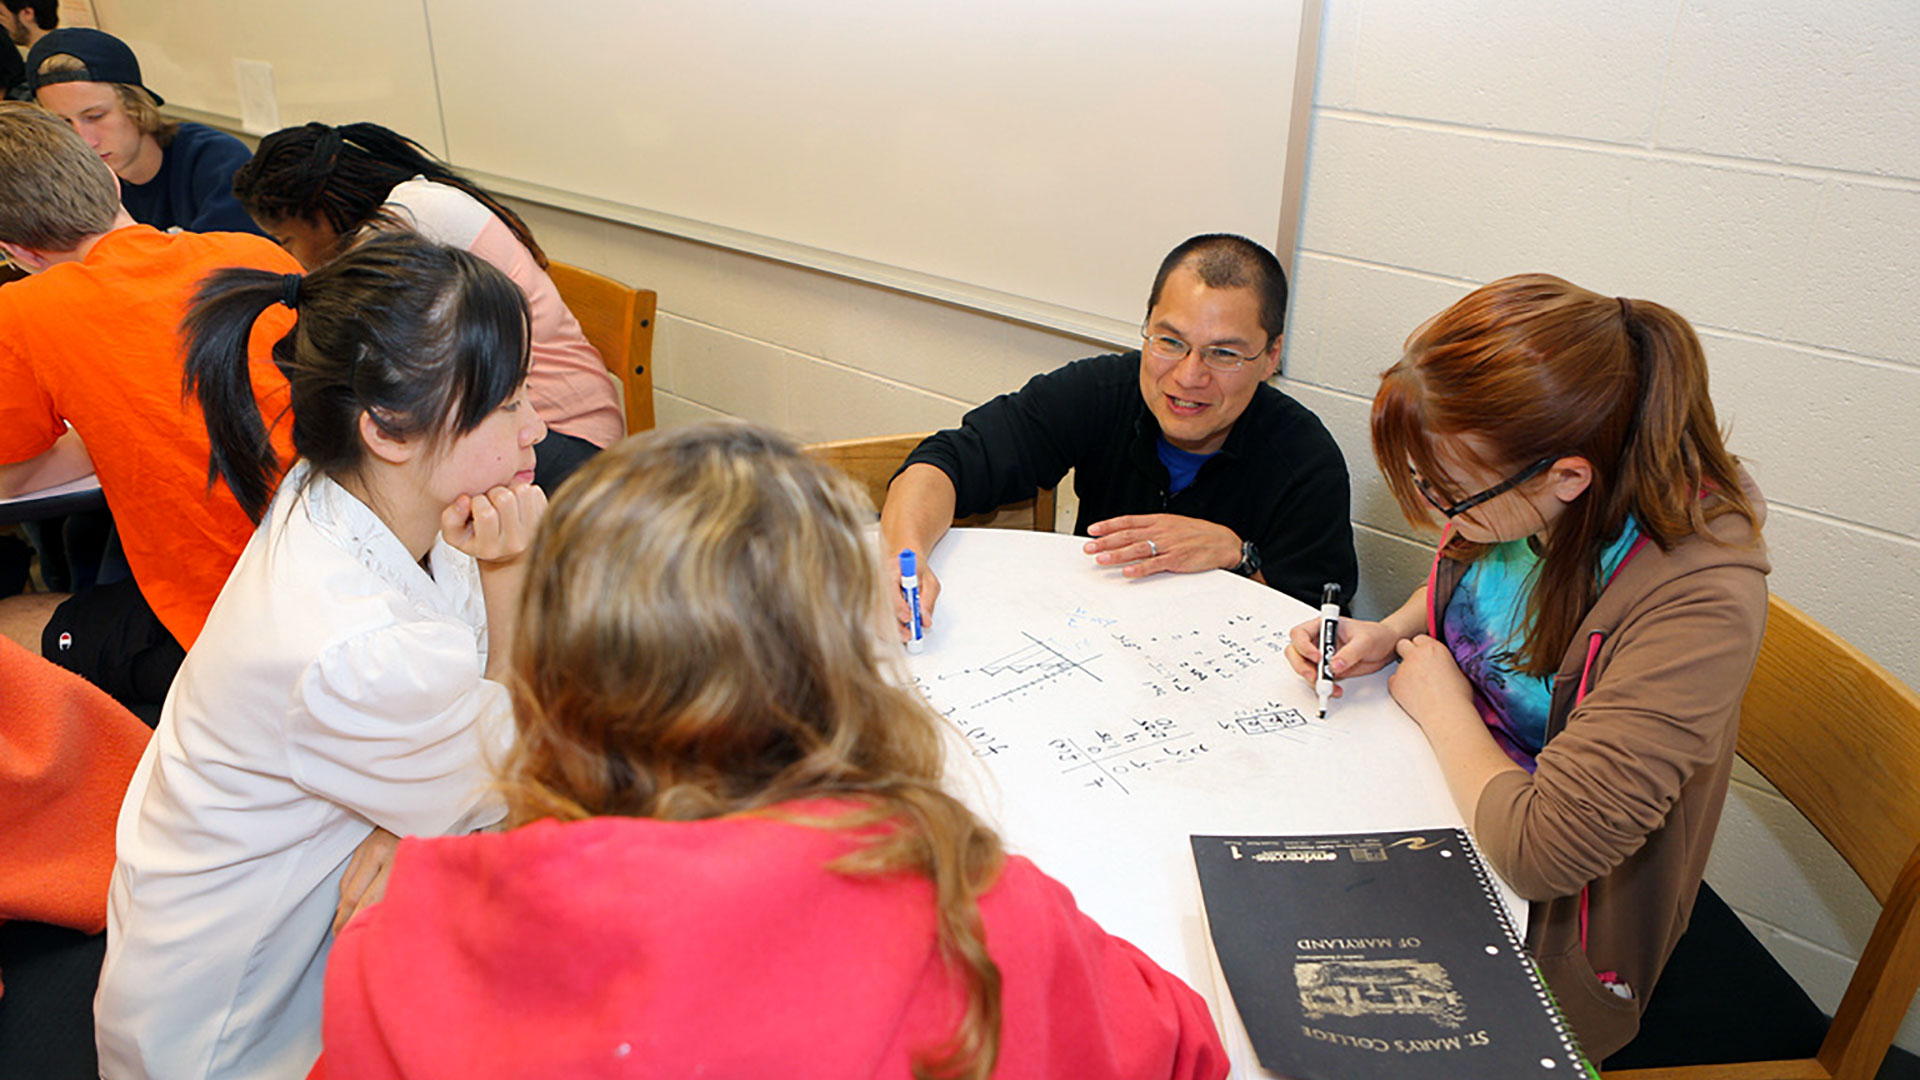 SMCM Math Program Professor David T. Kung works with students at round table